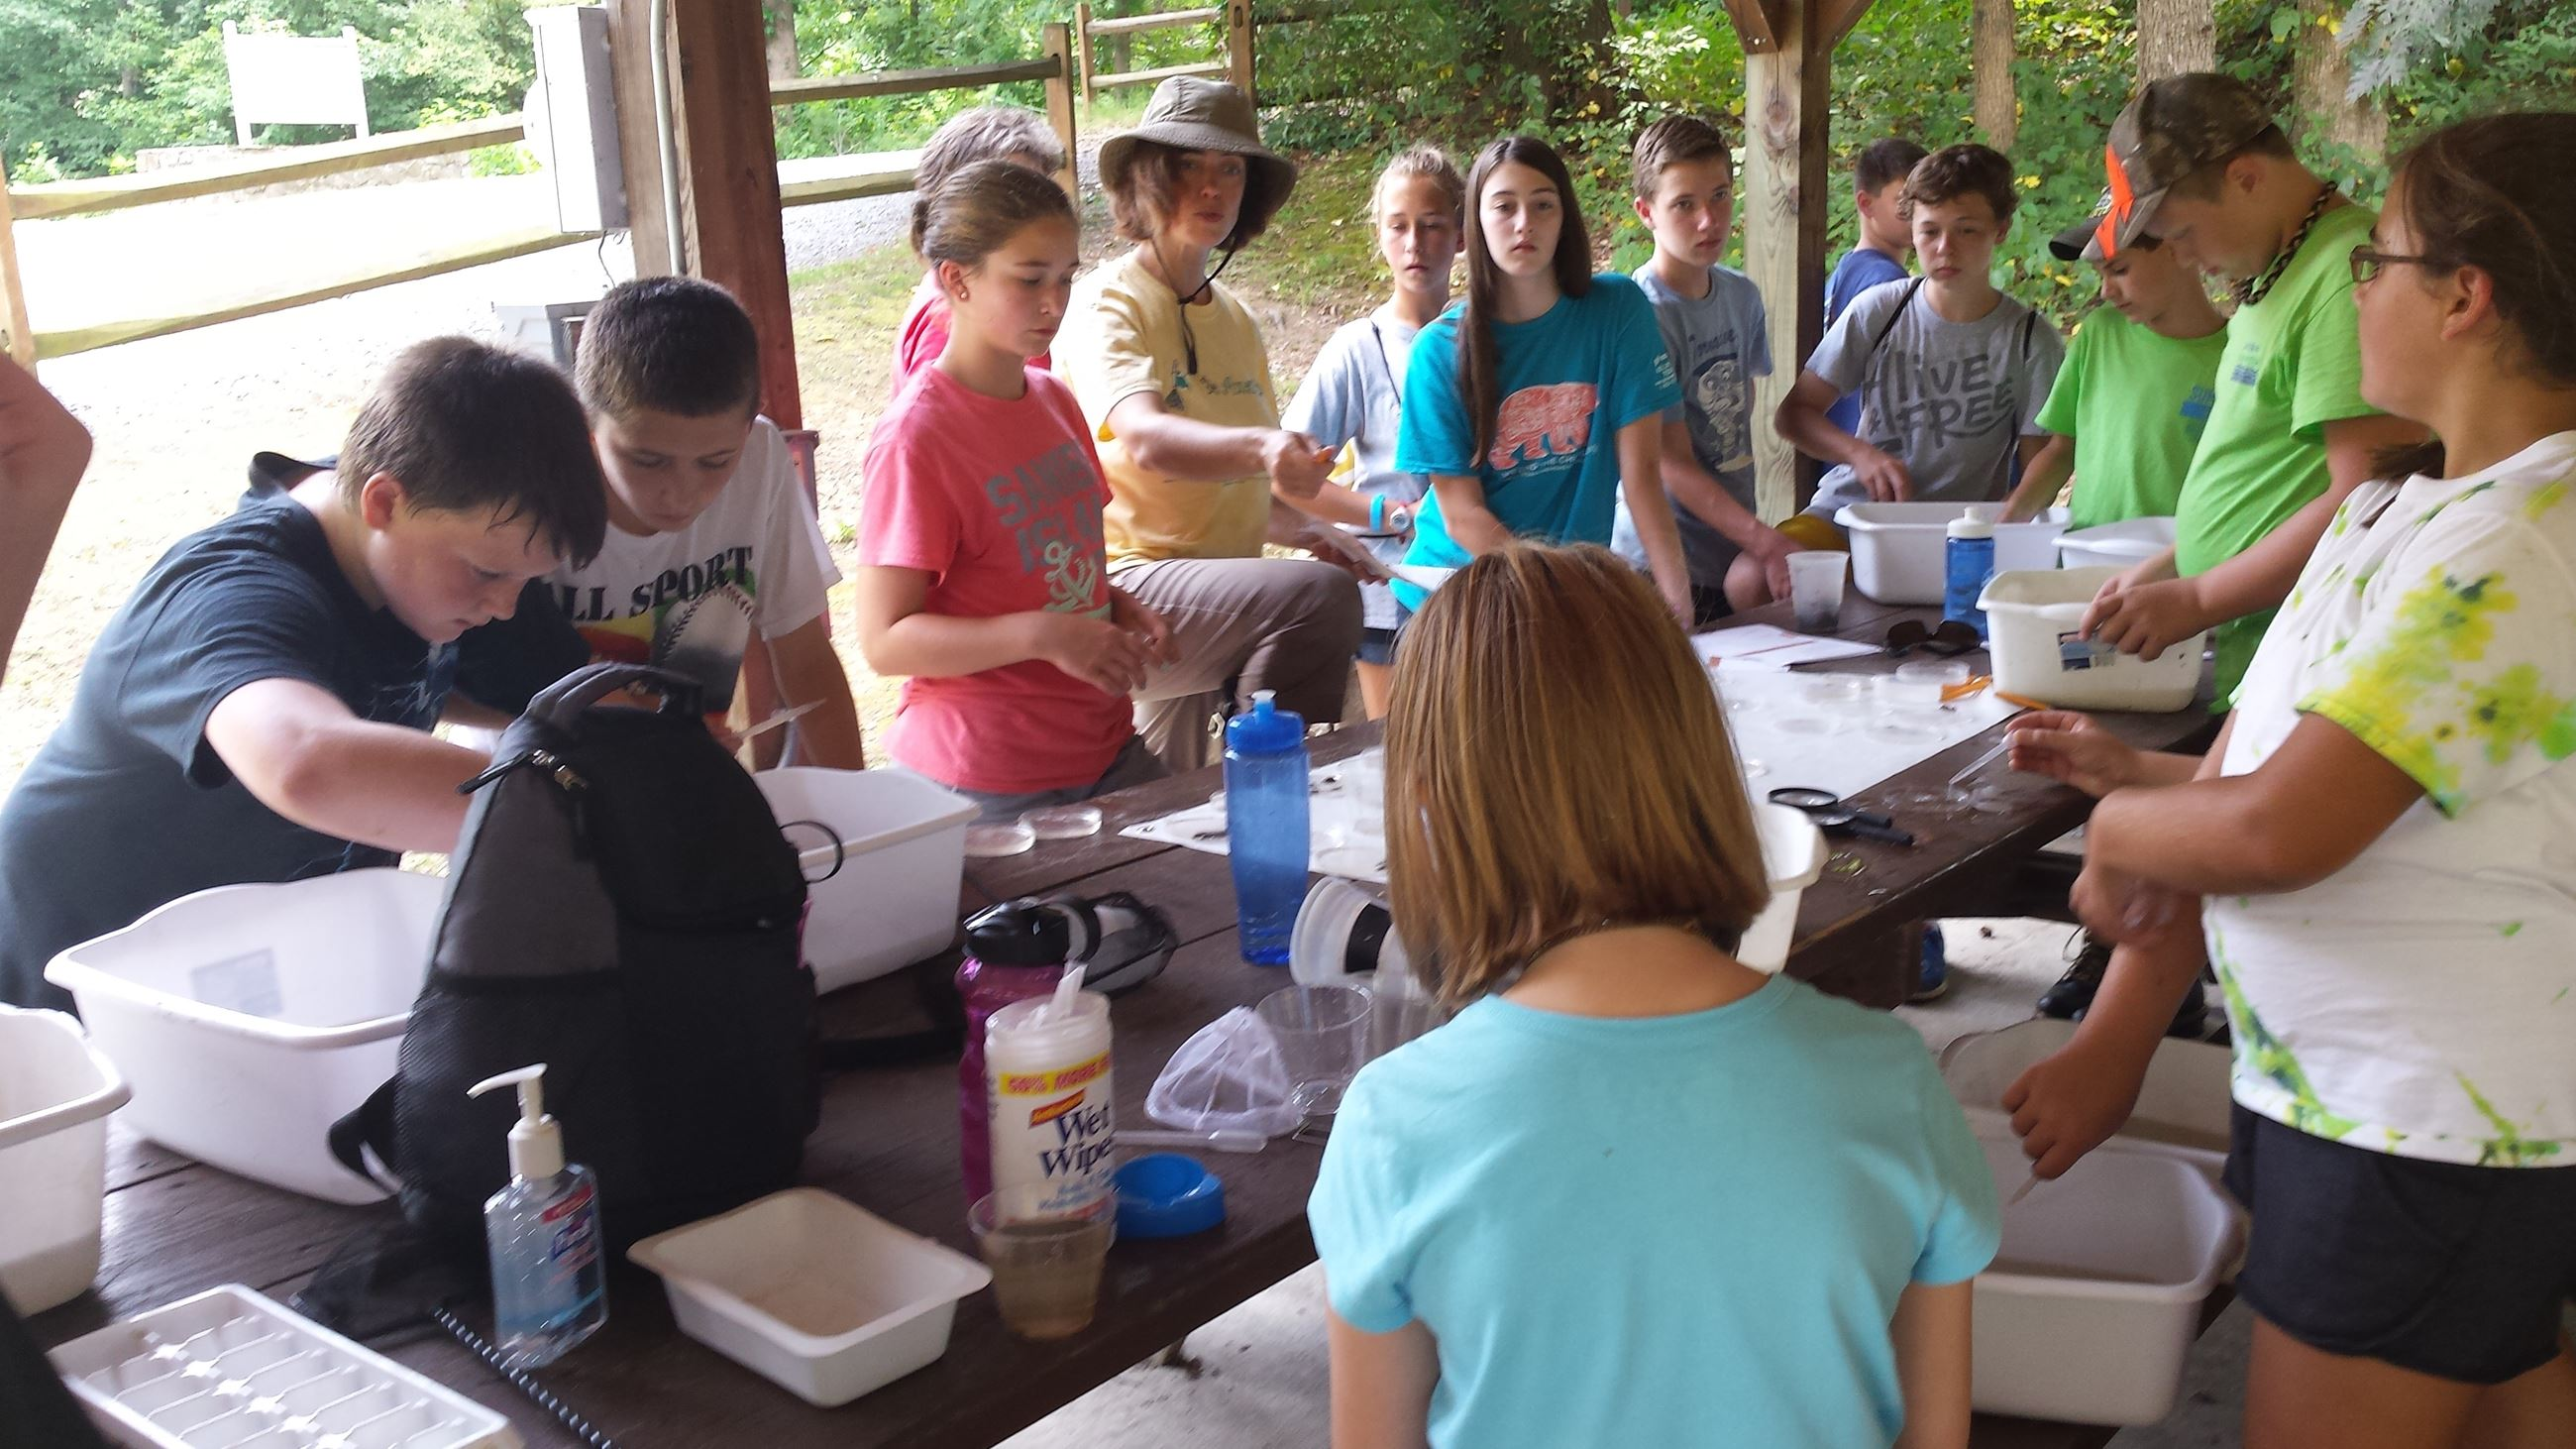 Kids doing experiments during summer environmental camp